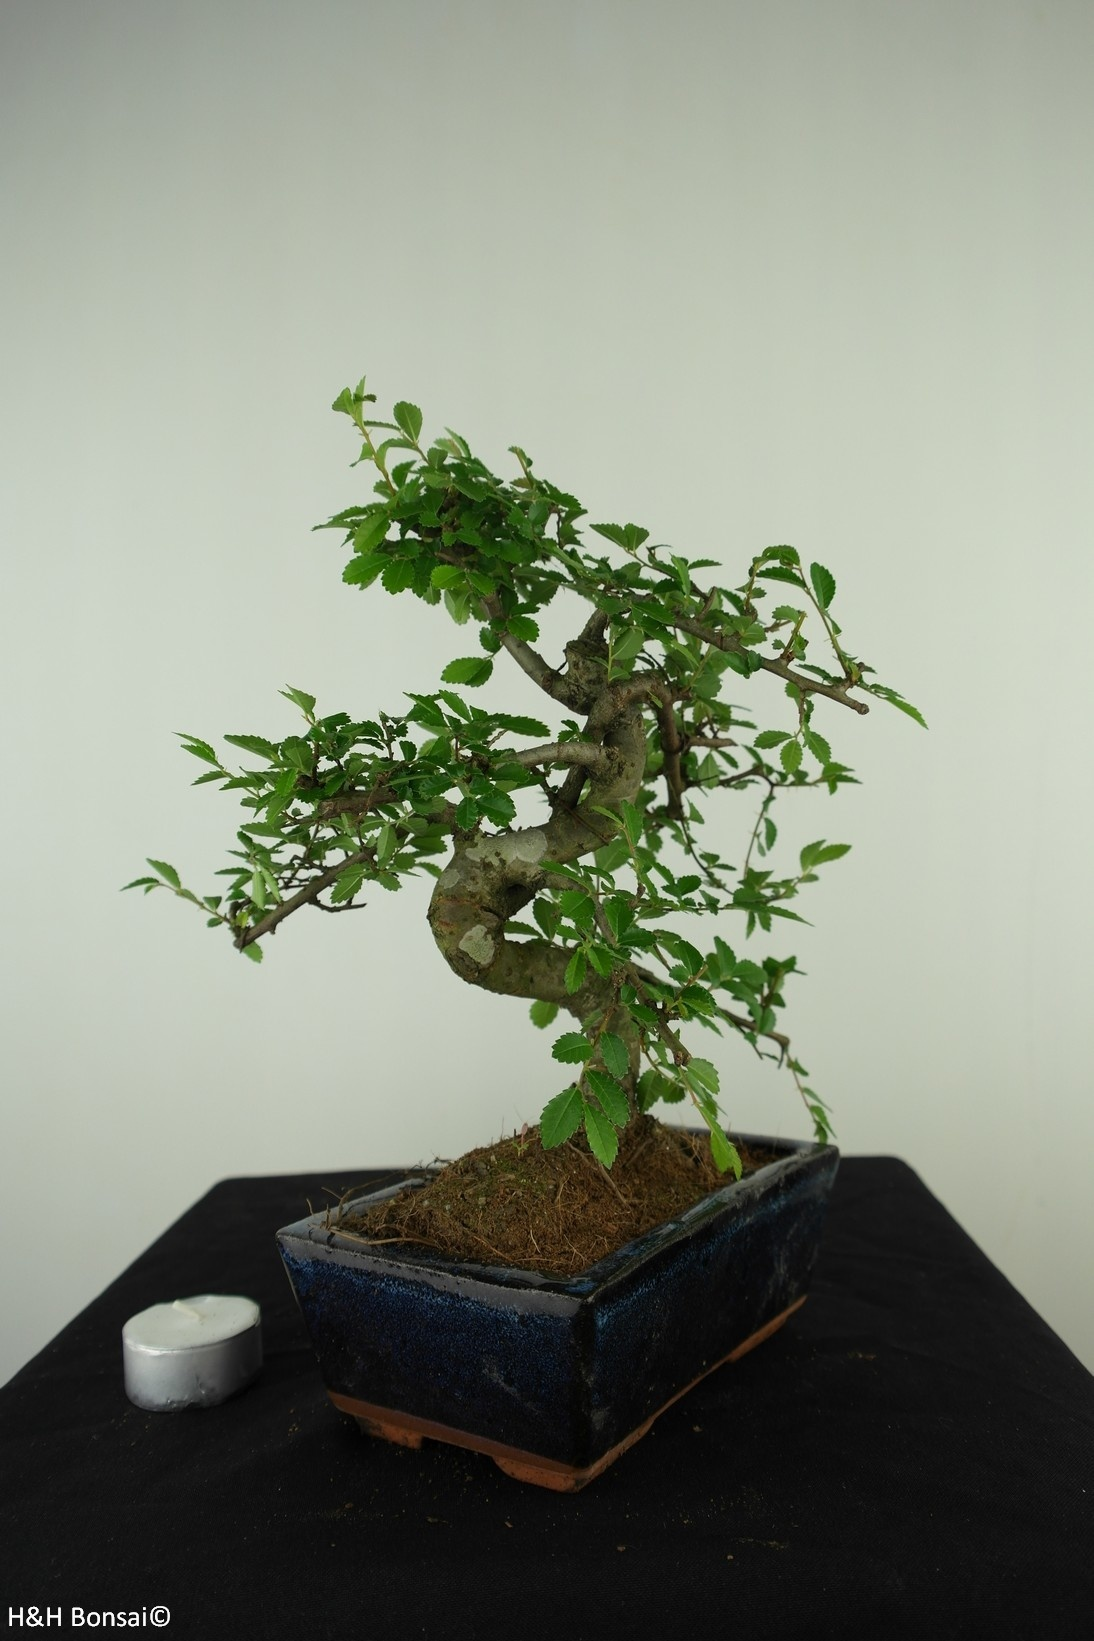 Bonsai Chinese Elm, Ulmus, no. 7735